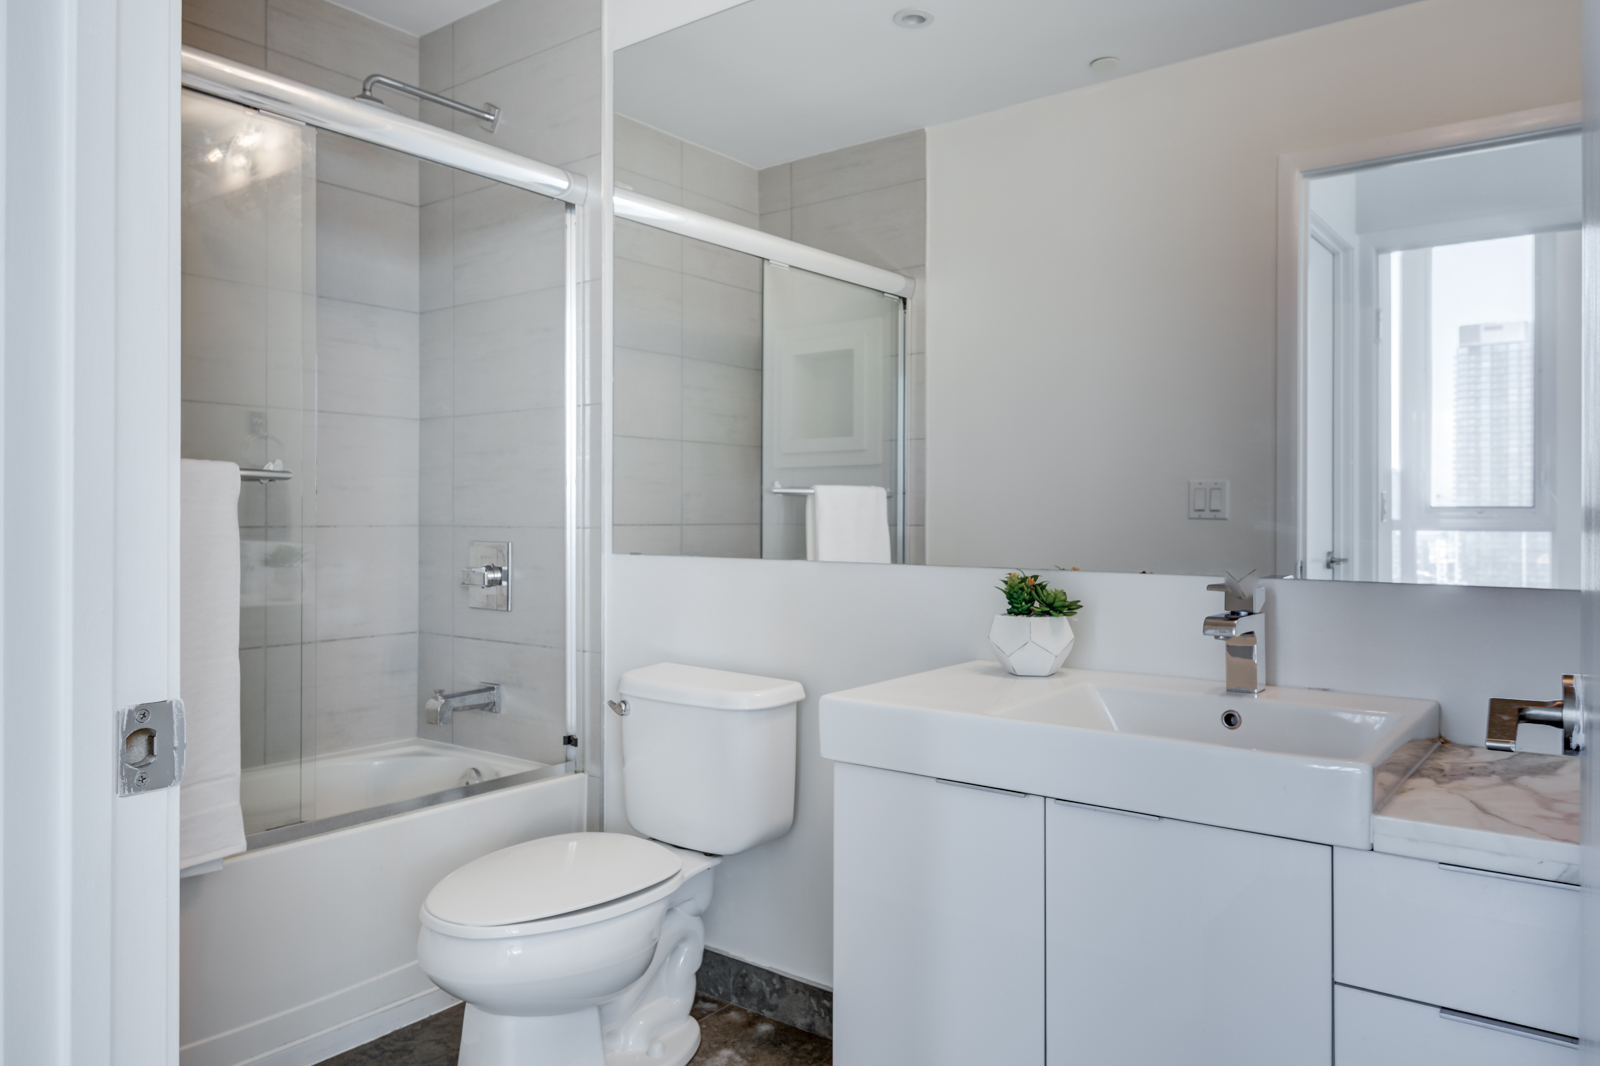 Second bathroom with tub and porcelain tiles at Victory Lofts Penthouse Suite in 478 King St W Toronto.